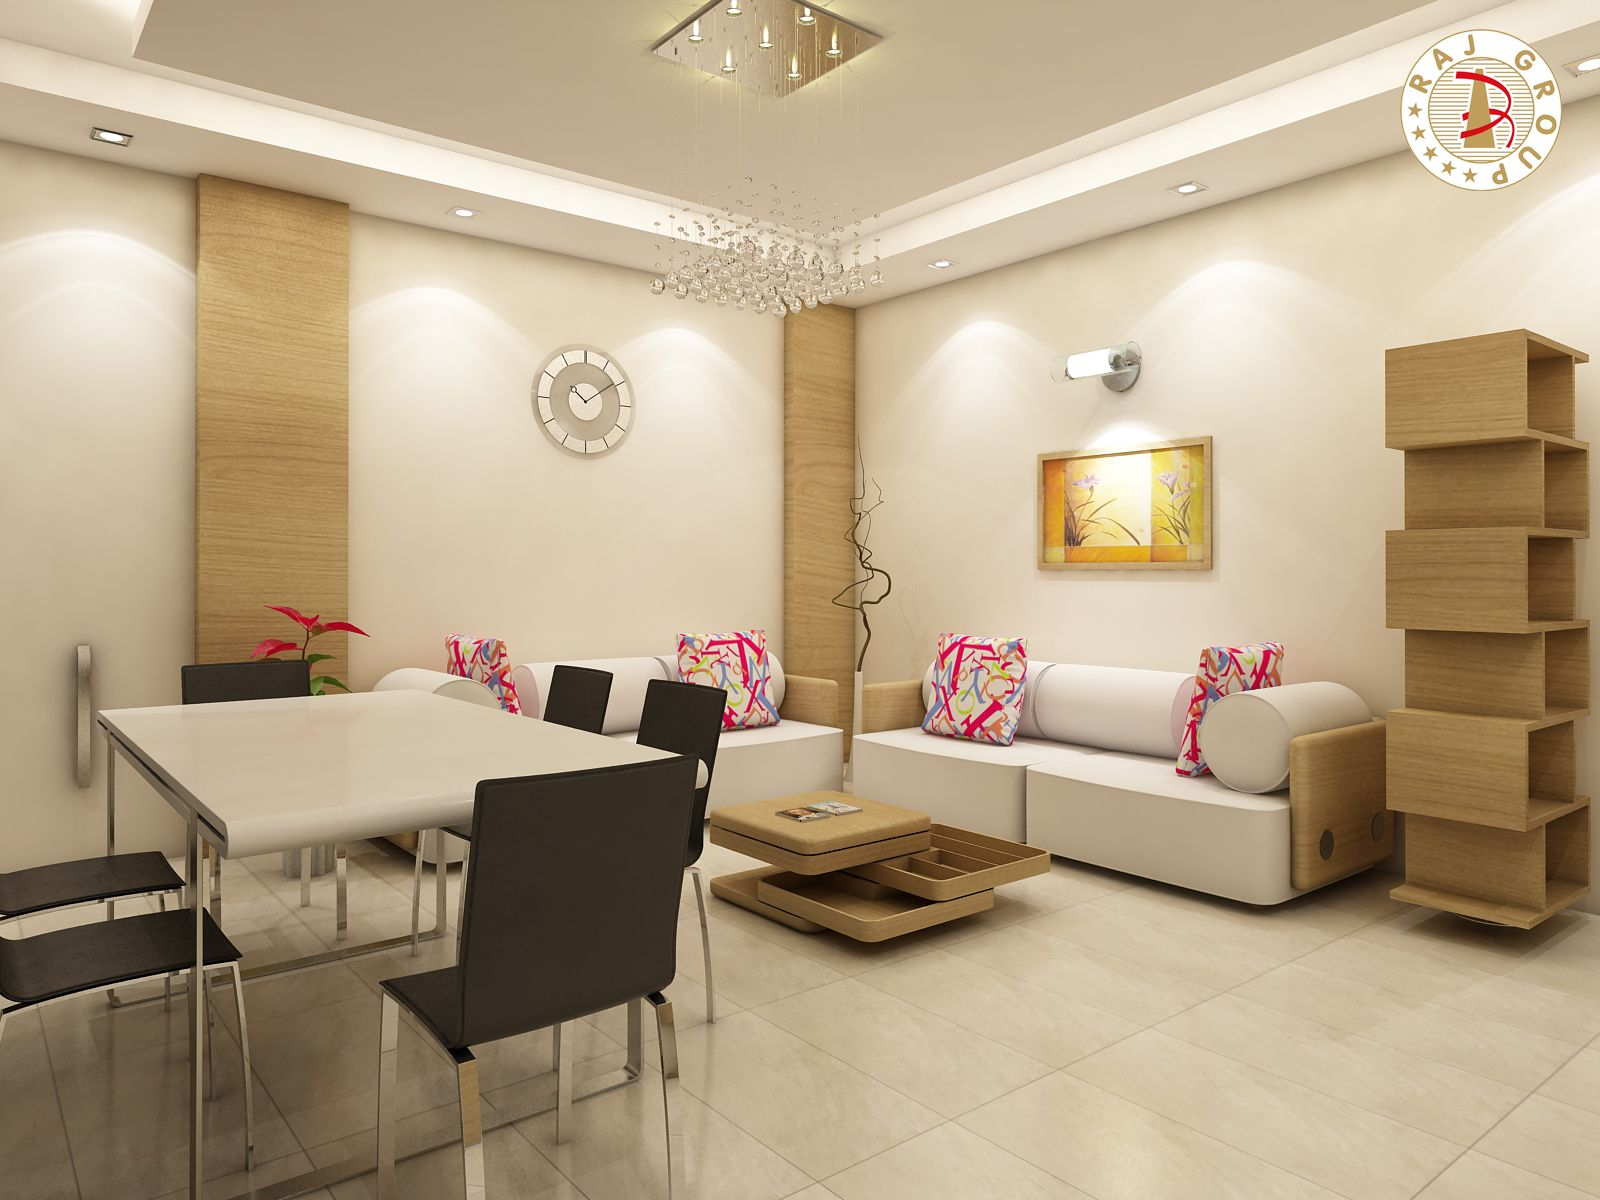 Vastu Tips For Drawing Room 1 Should Be In The East Or